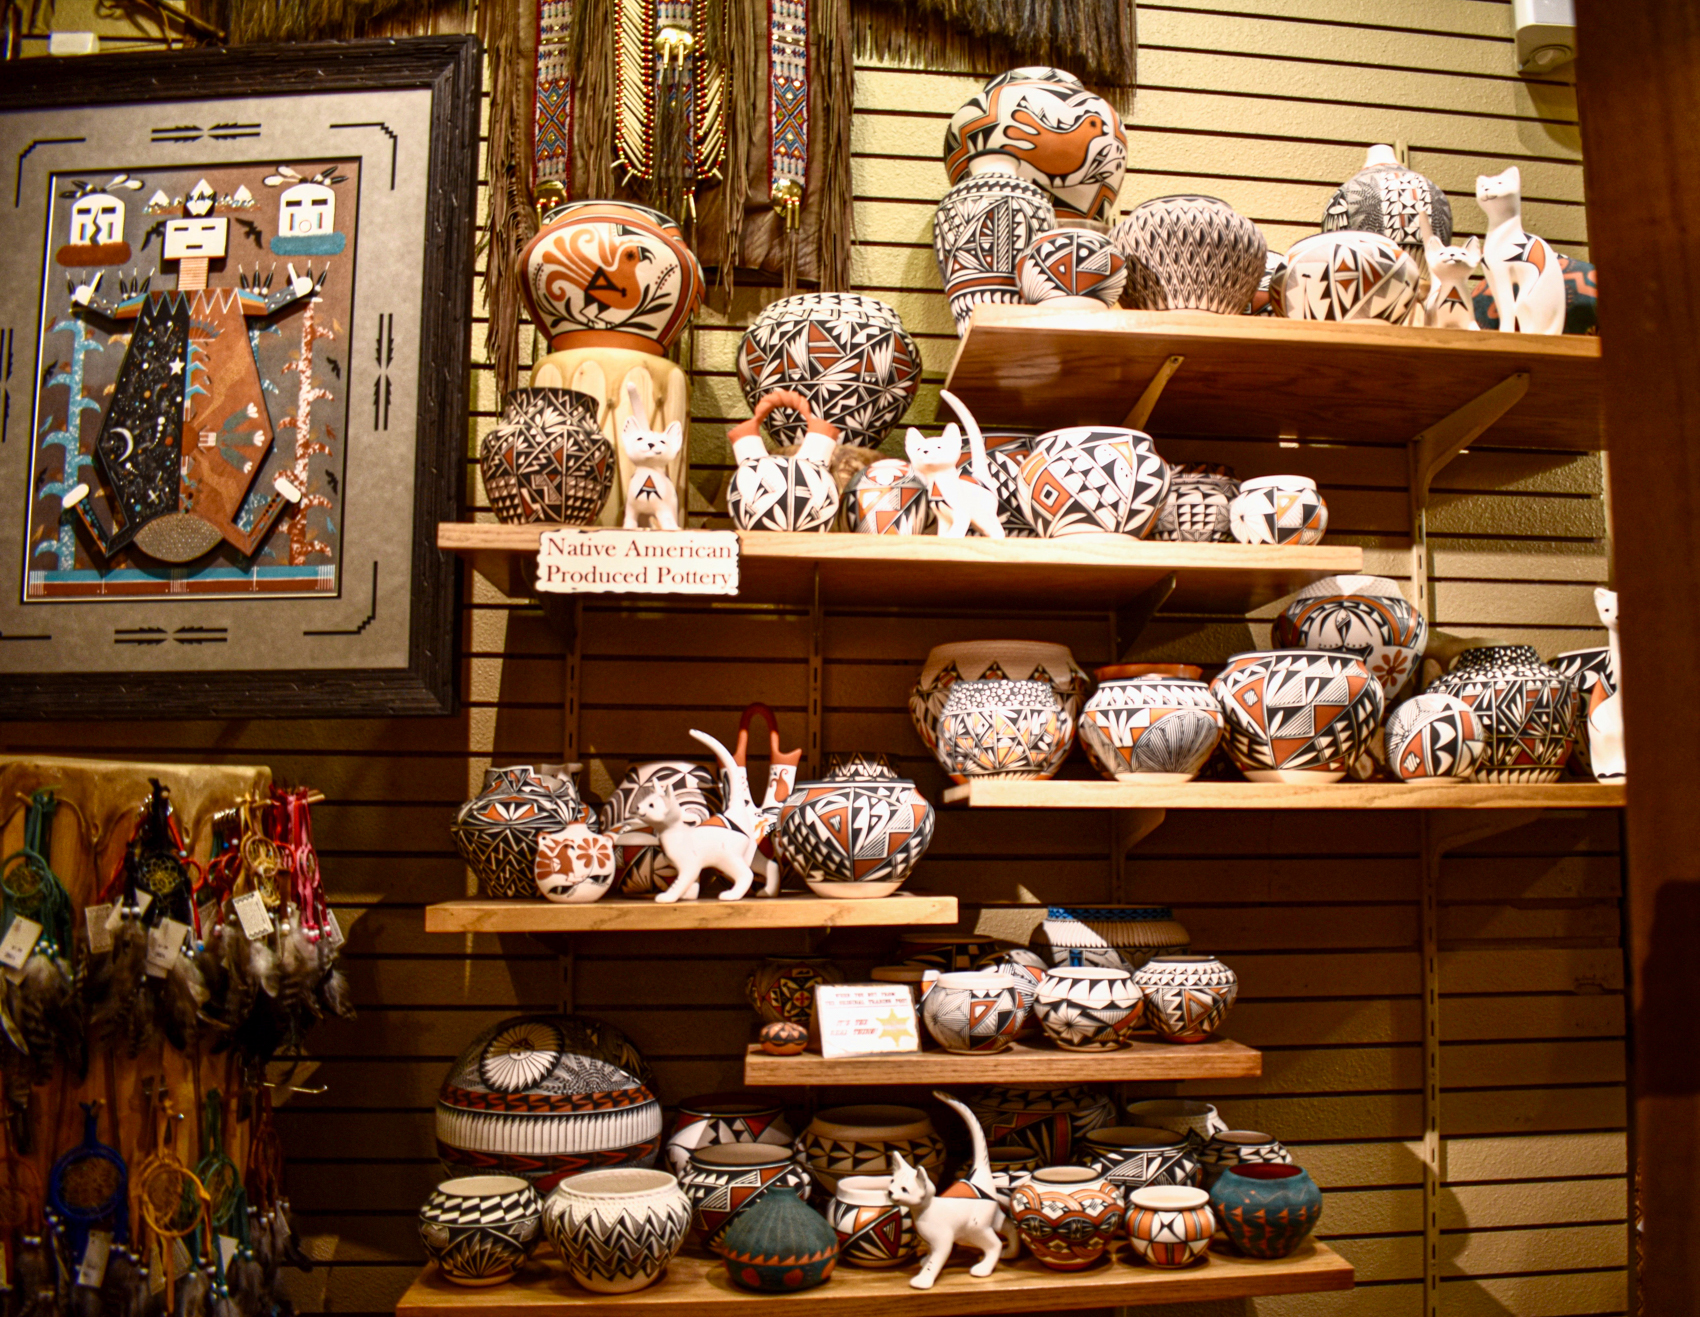 Native-American-Pottery-in-Santa-Fe